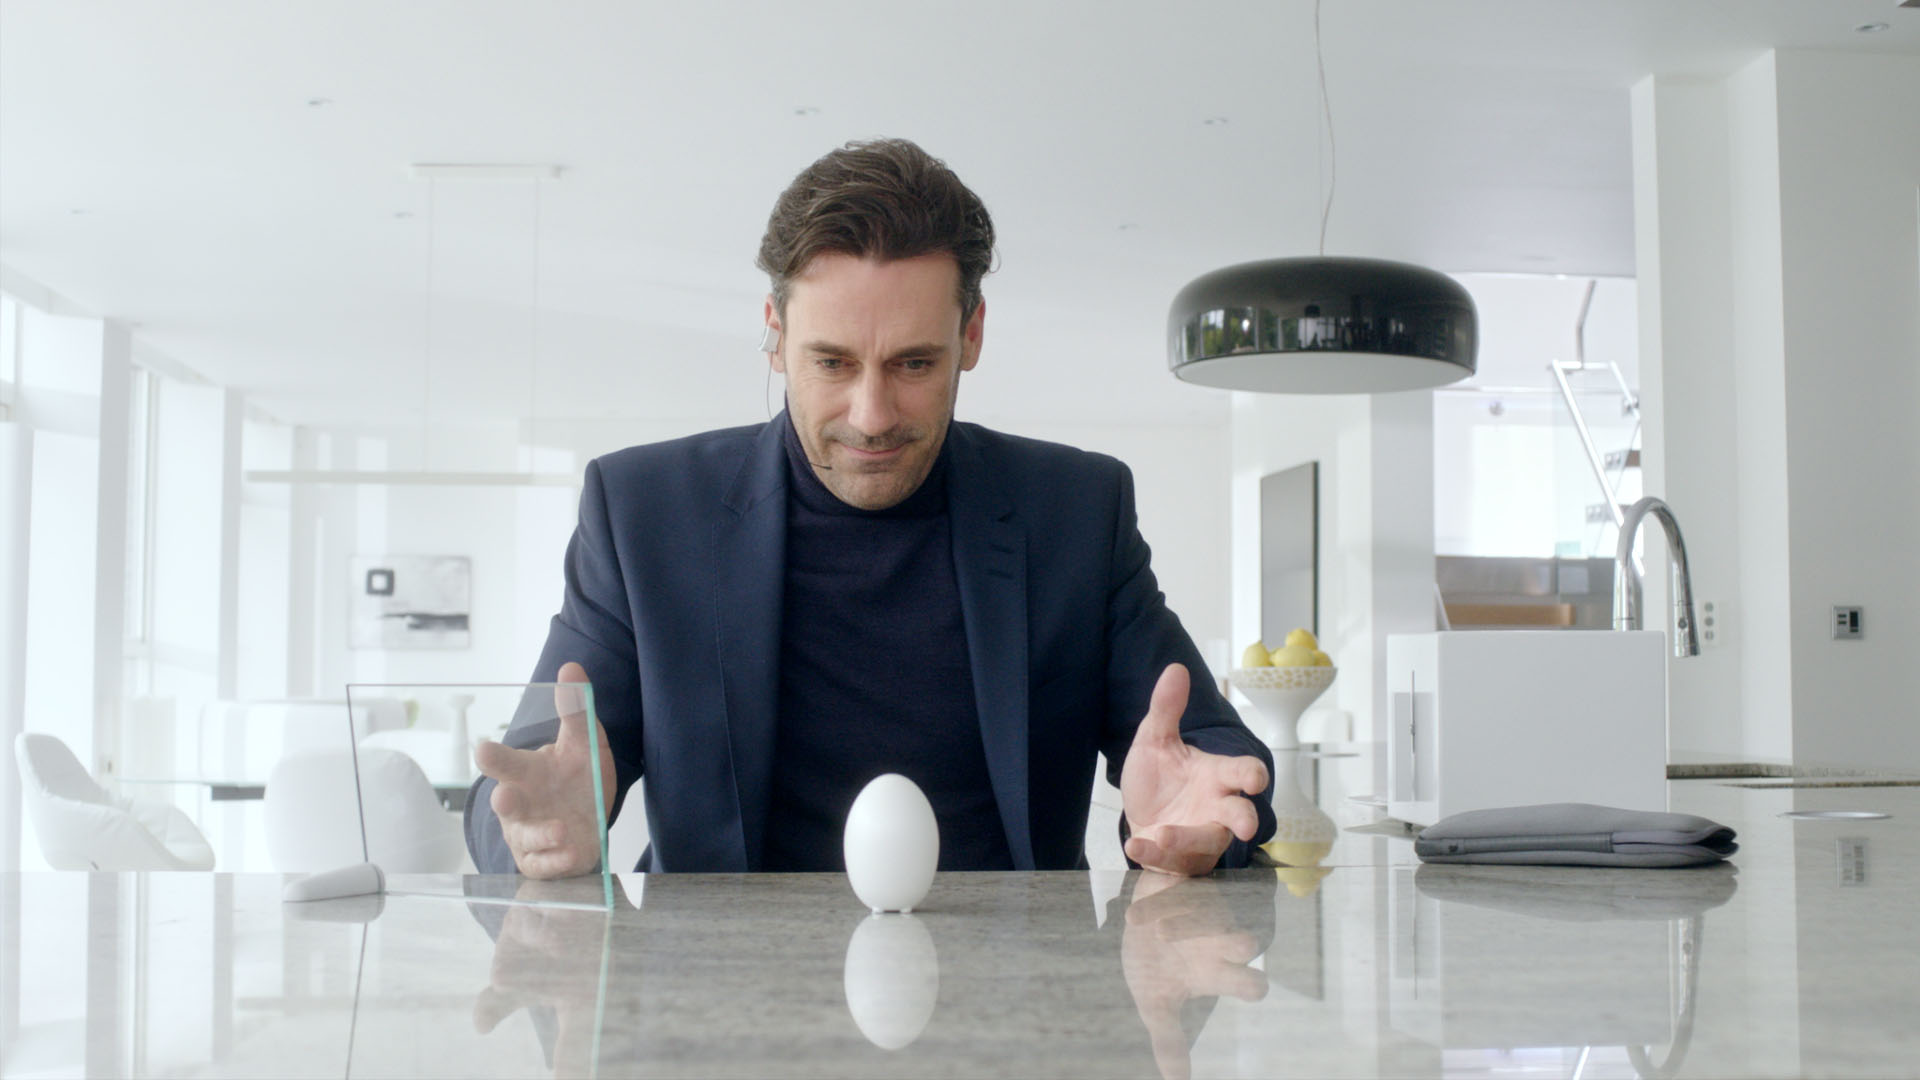 Jon Hamm appears in the Black Mirror Christmas special.